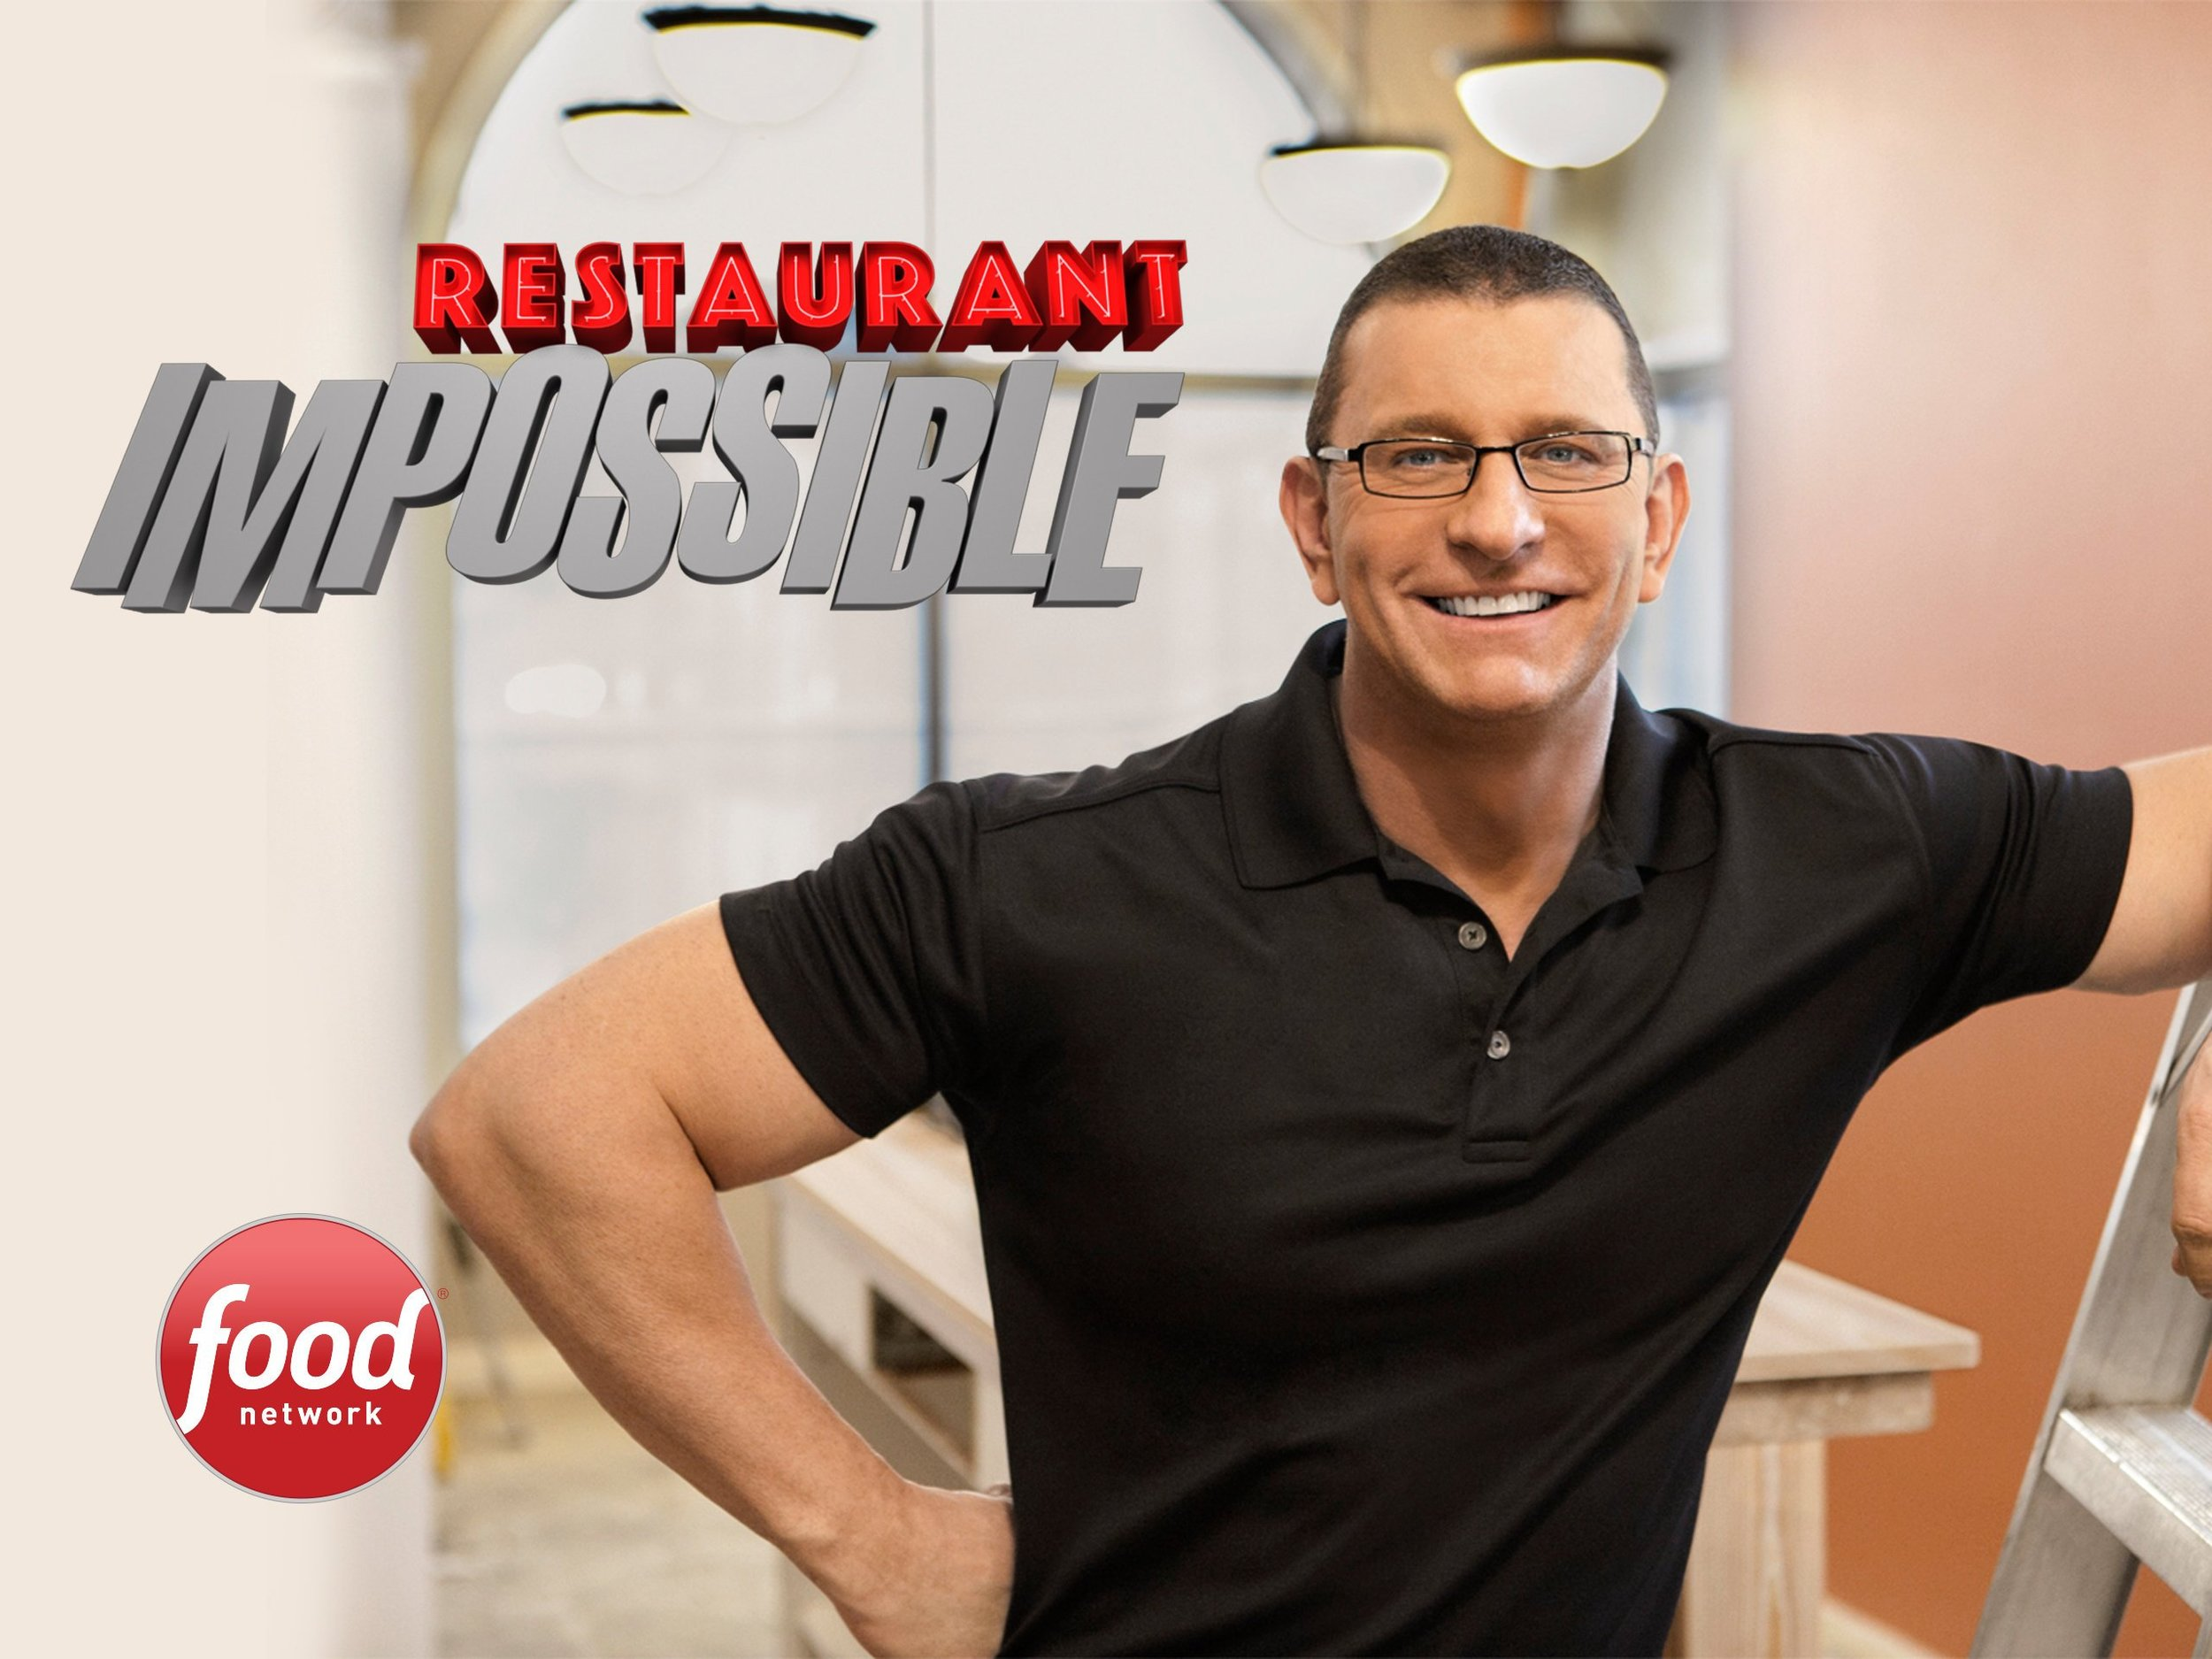 Restaurant Impossible  Source: Food Network